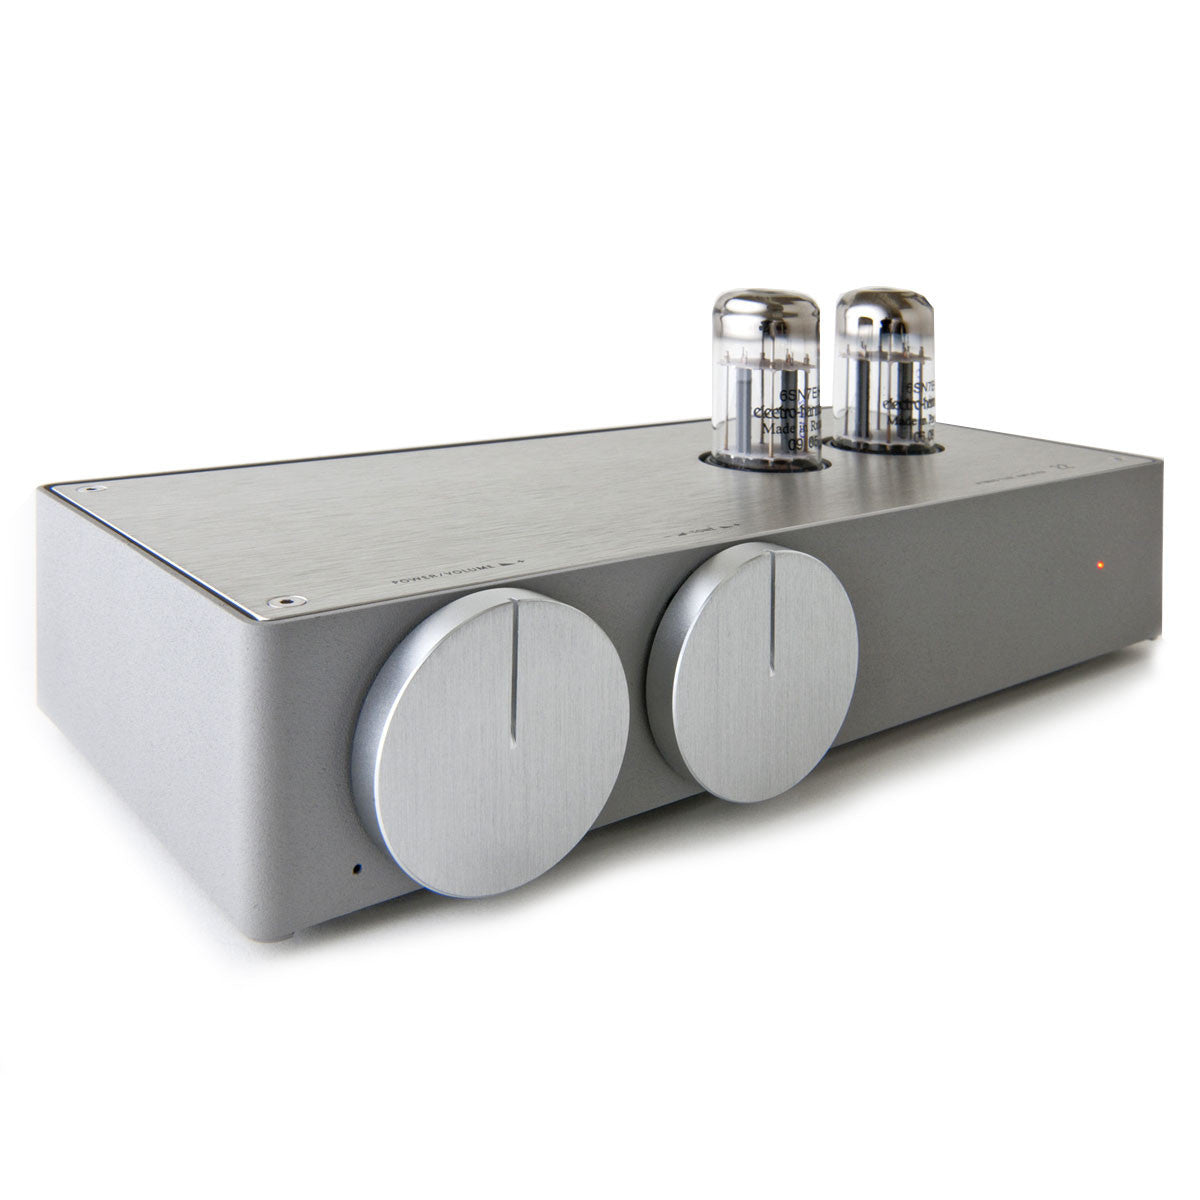 EK Japan: 22 Hybrid Tube Amplifier